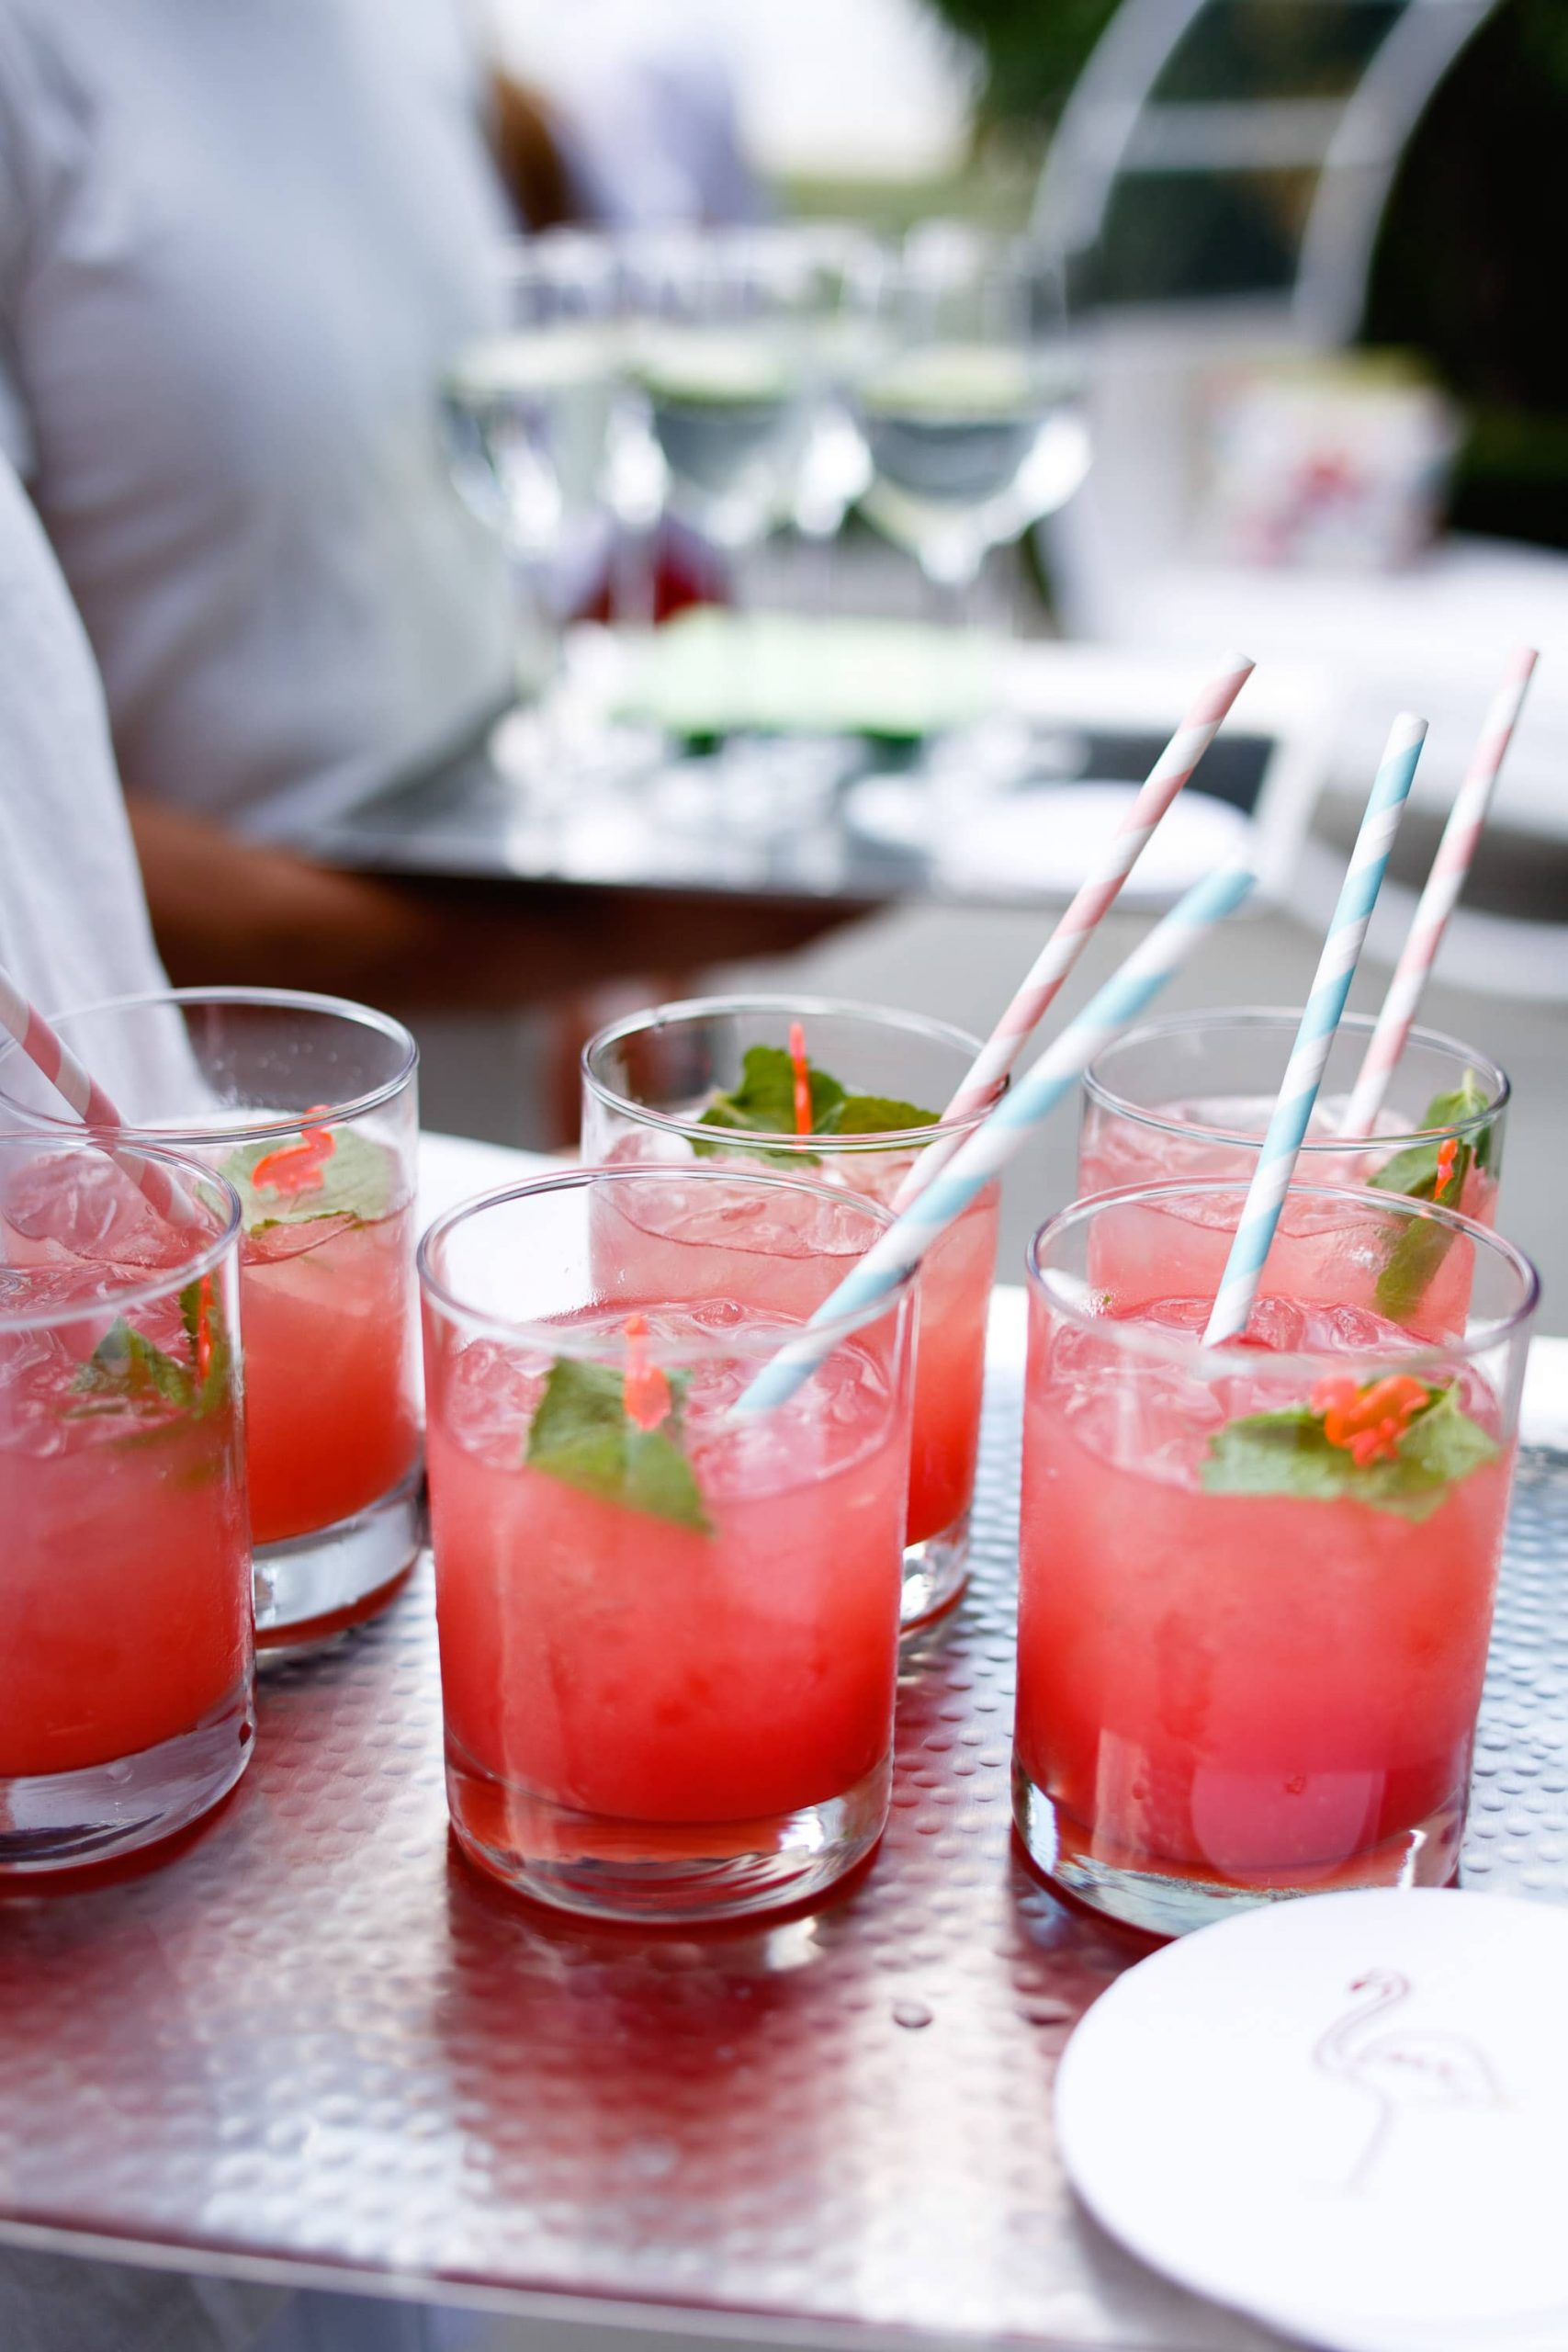 Watermelon drinks at this South Beach-inspired first birthday pool party in the Hamptons | Photo by Cava Photo